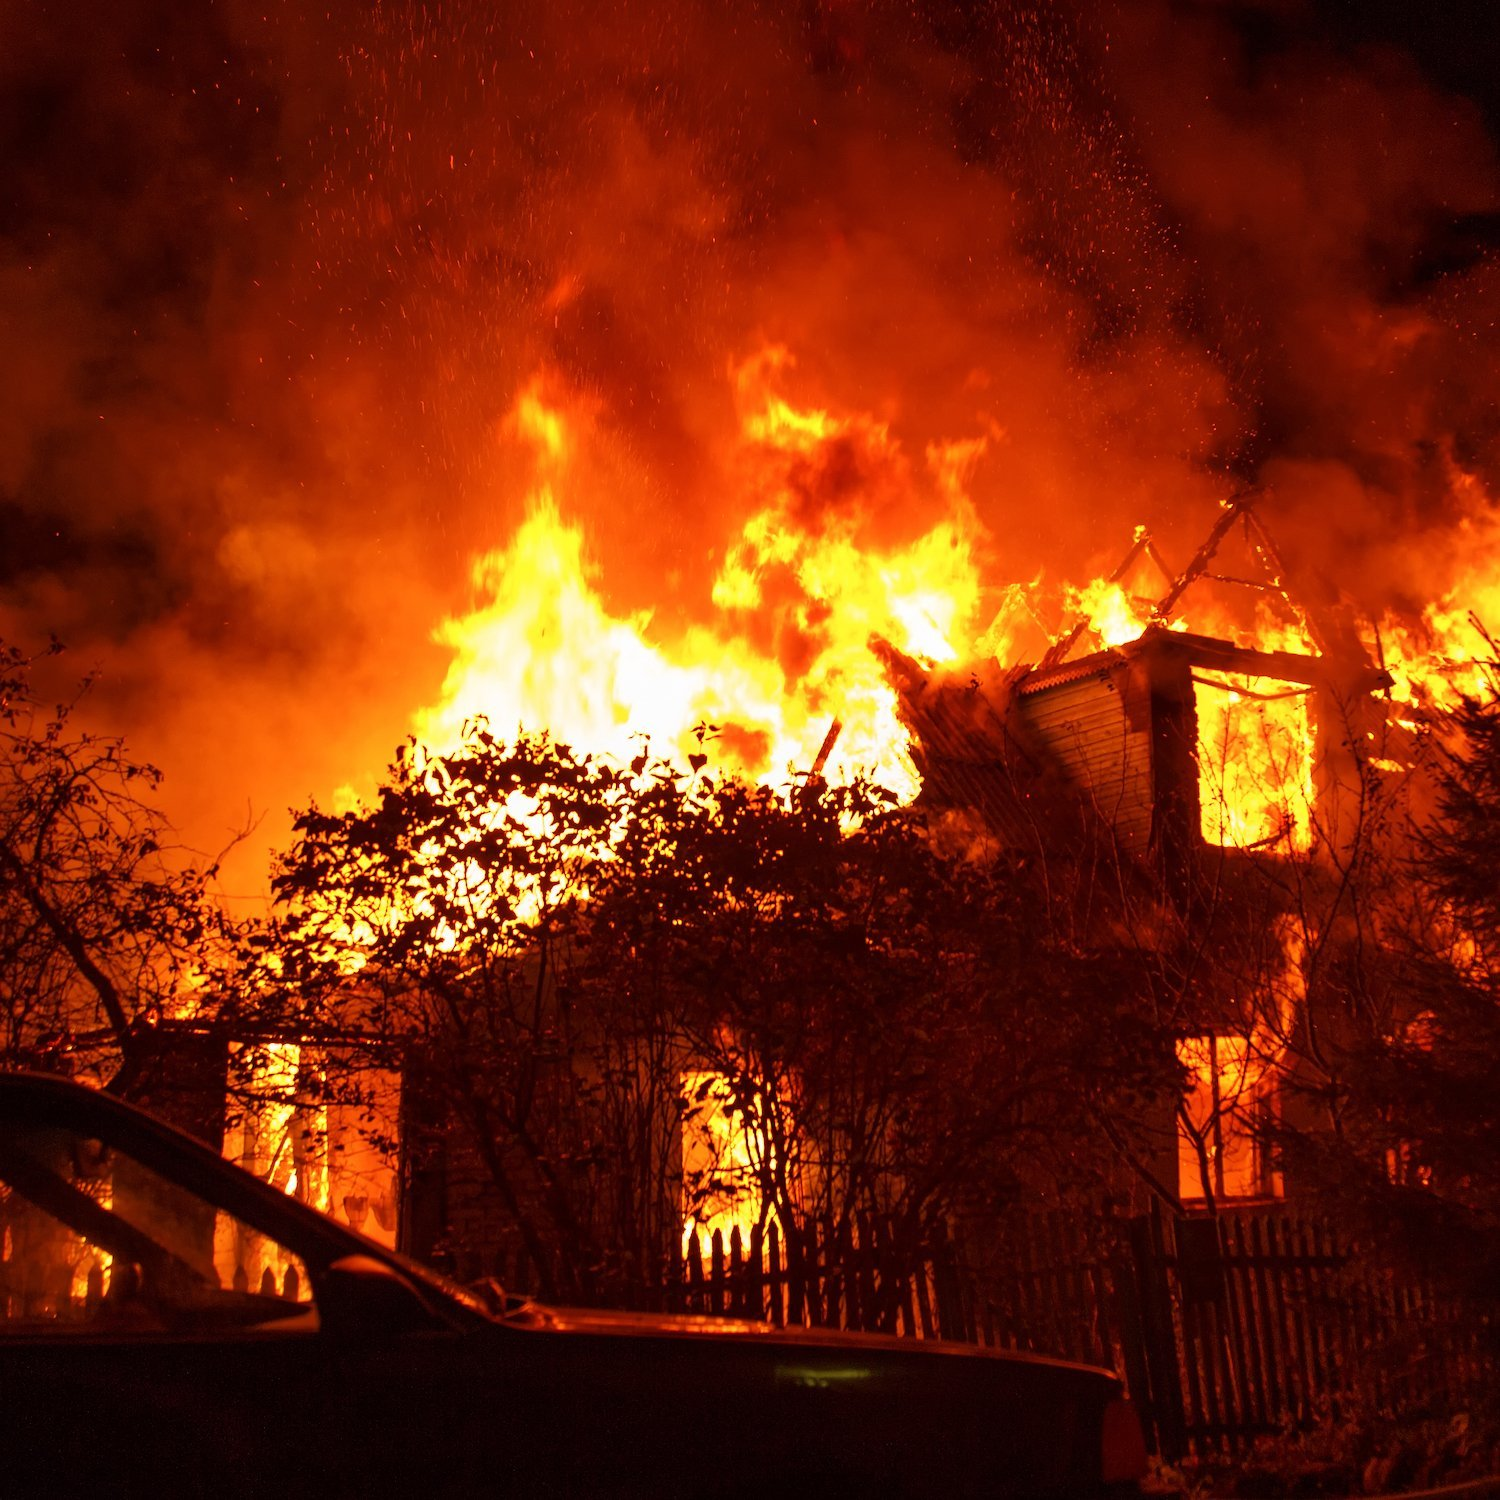 Listen: Homes Destroyed in California's Largest Wildfire